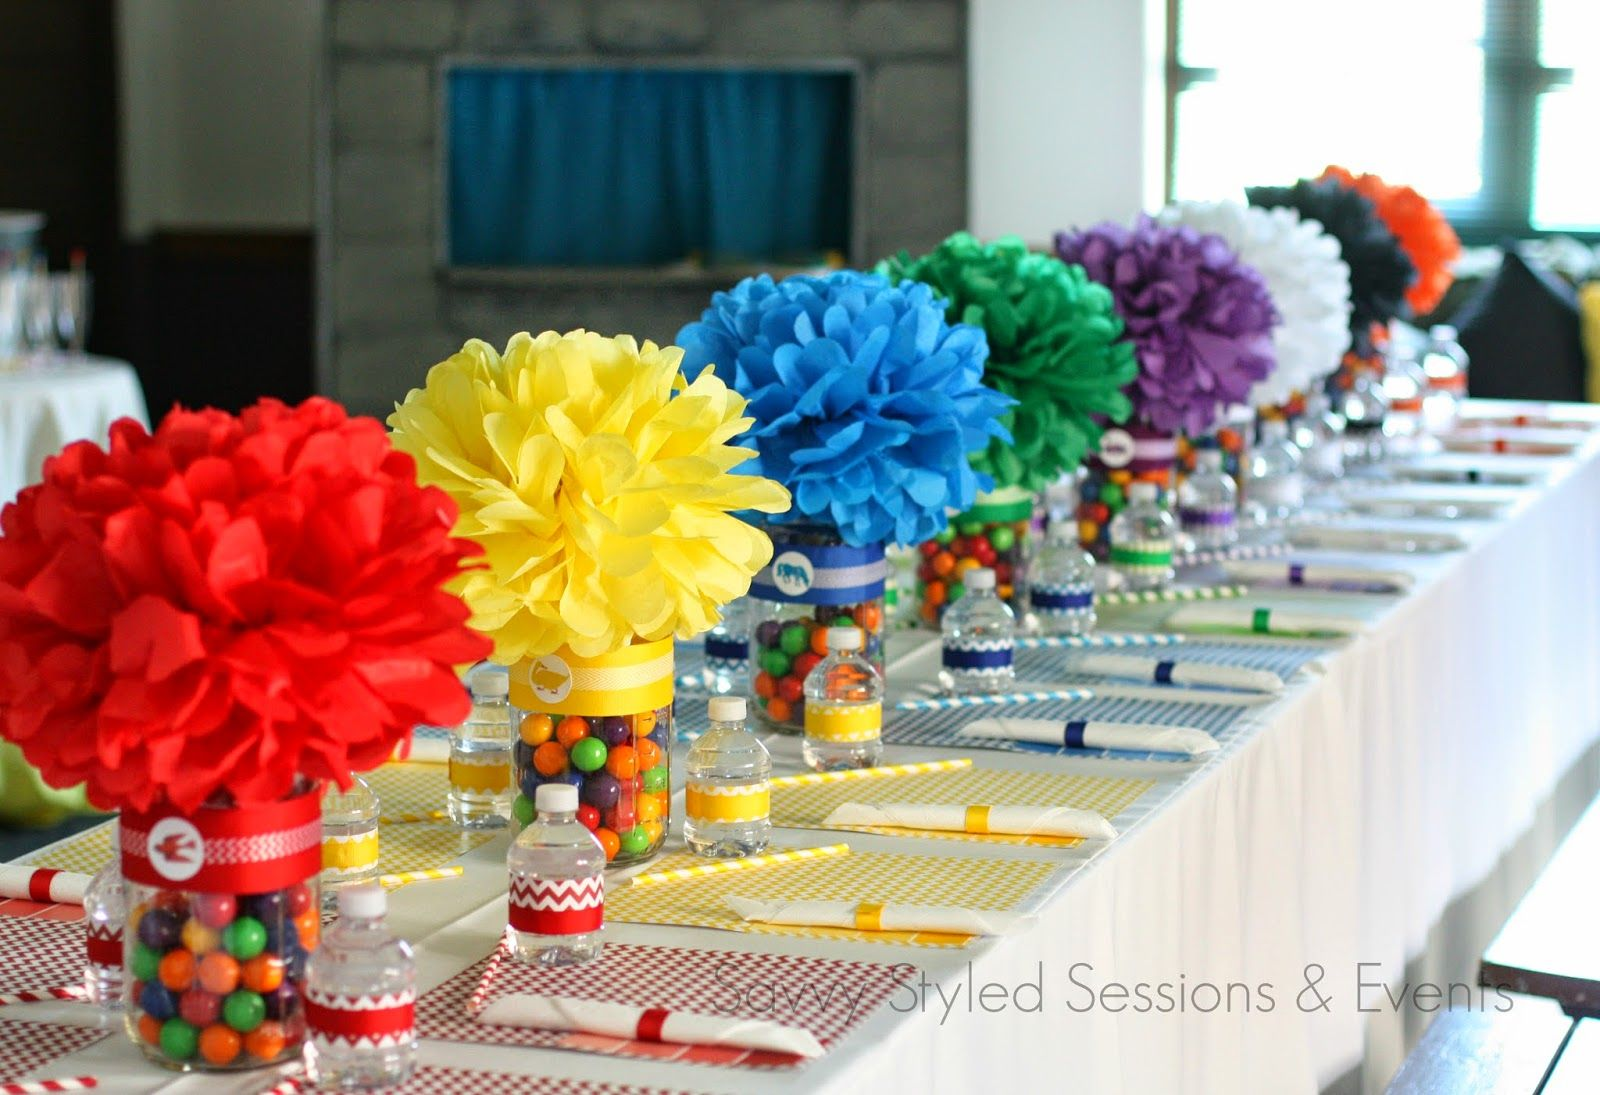 Brown bear brown bear what do you see rainbow toddler party birthday party ideas dhlflorist Image collections